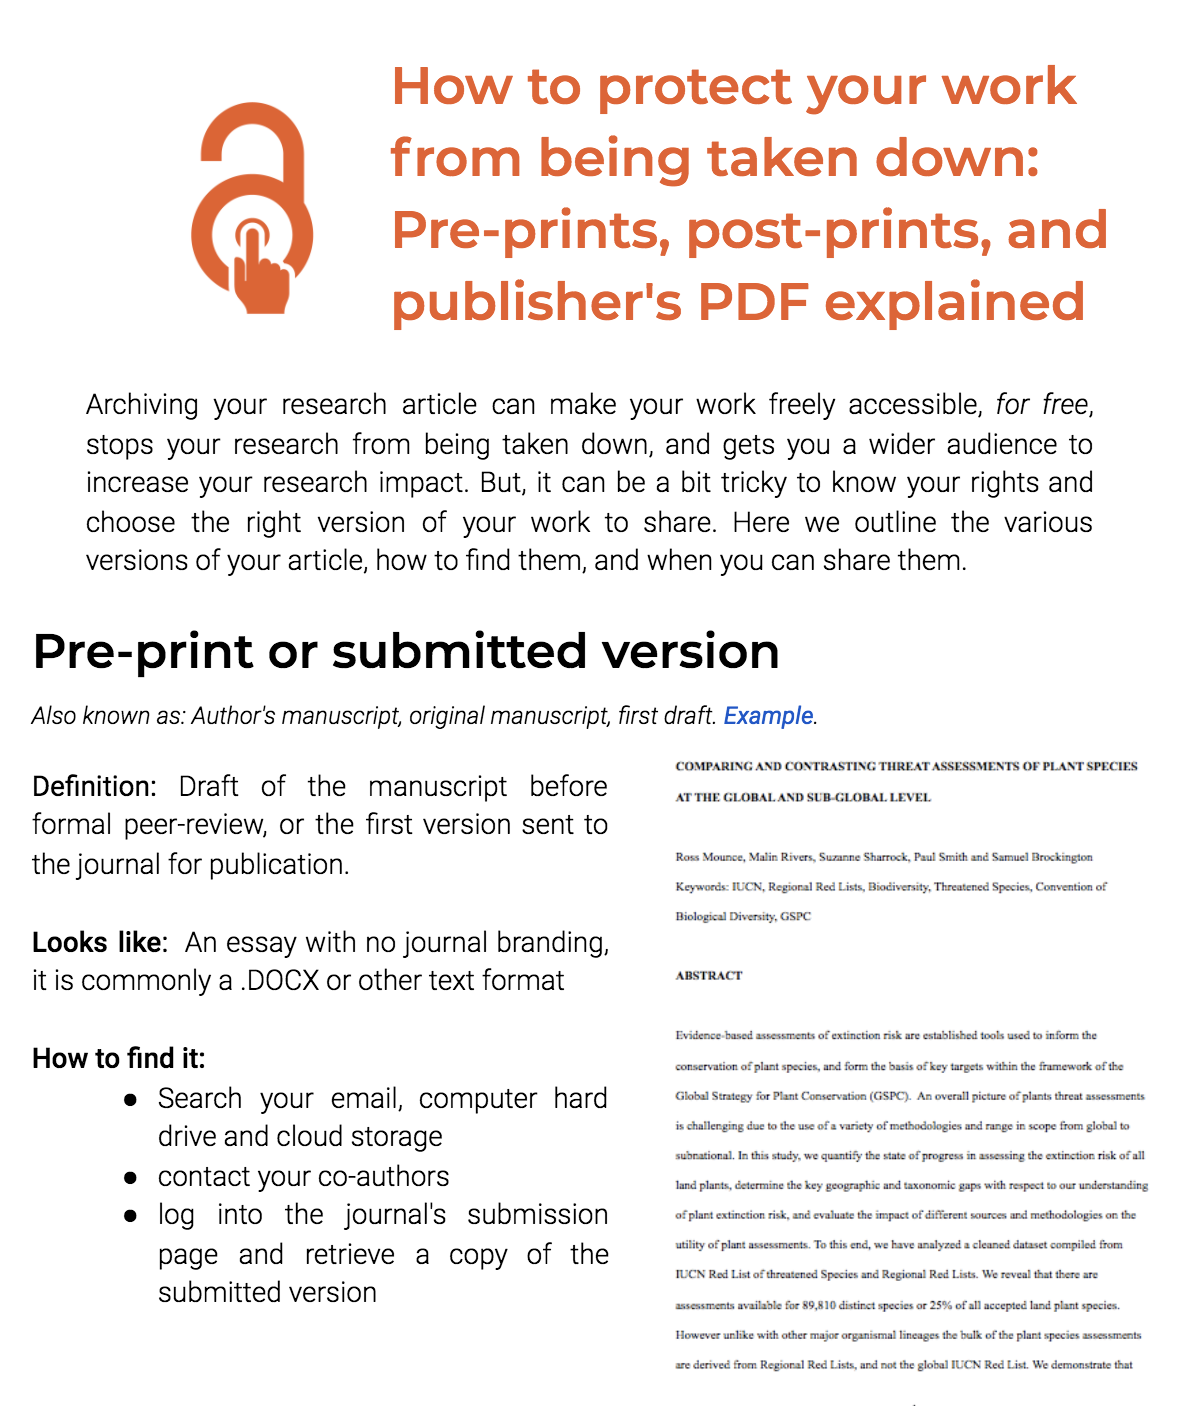 How to protect your work from being taken down: Pre-prints, post-prints, and publisher's PDF explained